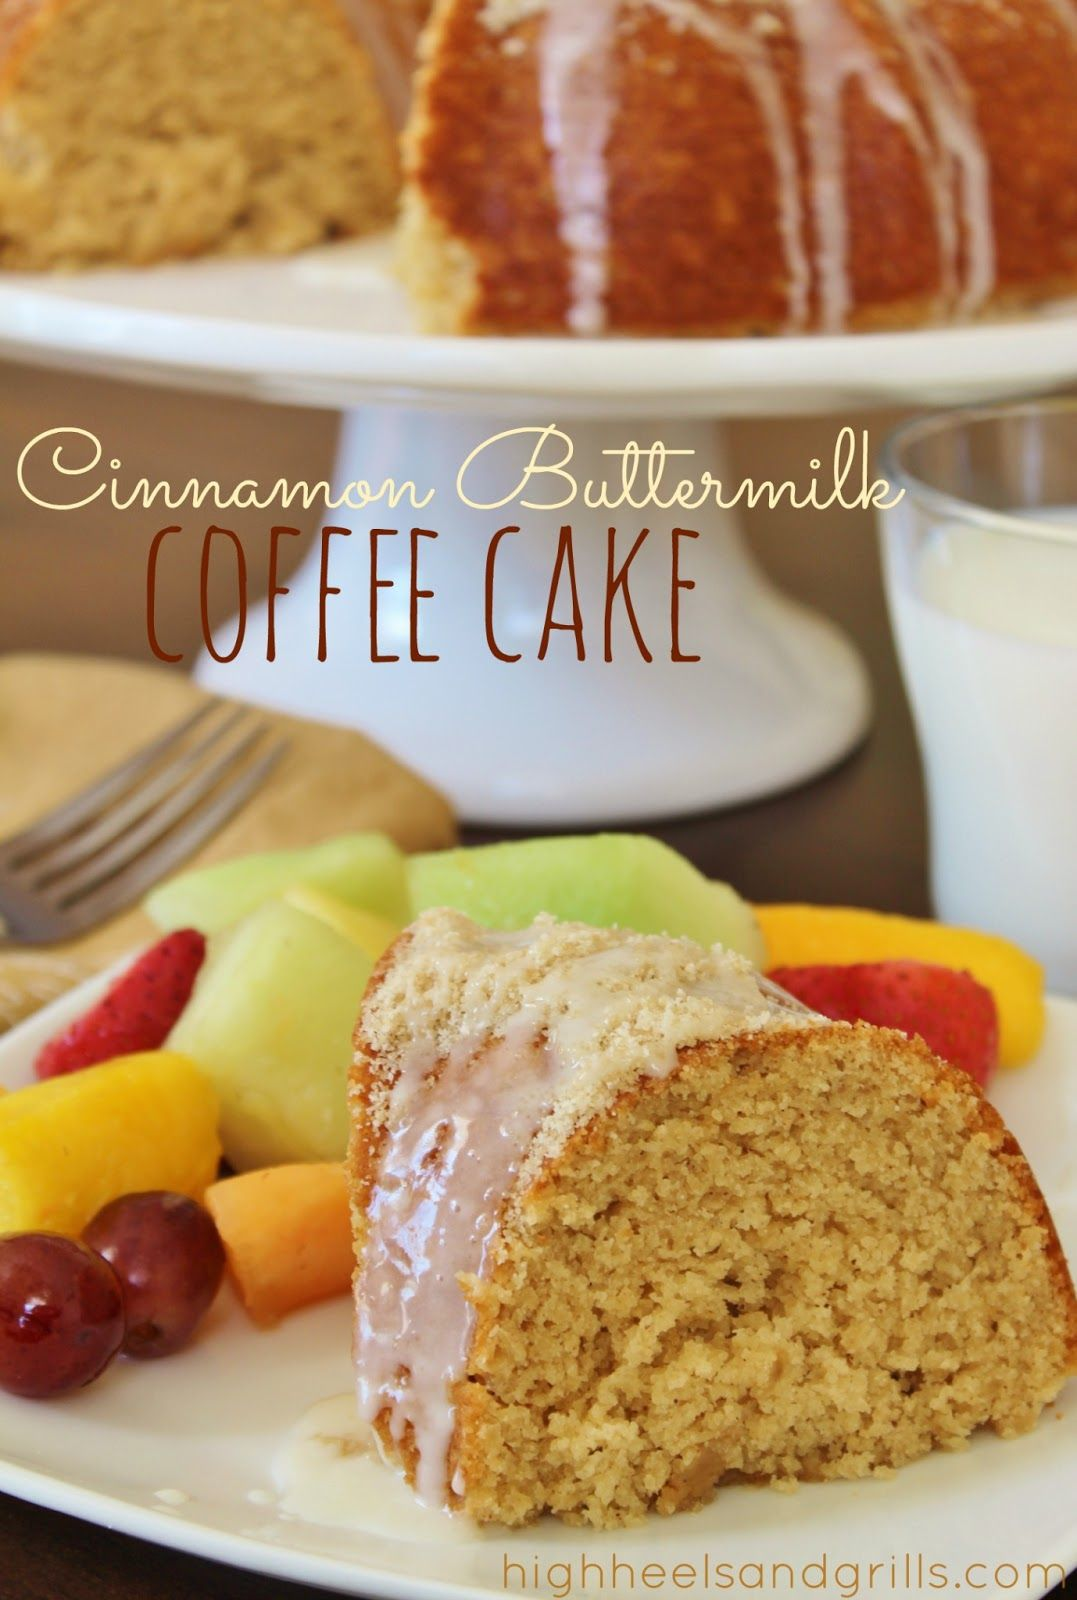 Cinnamon Buttermilk Coffee Cake Buttermilk Coffee Cake Coffee Cake Baking Recipes